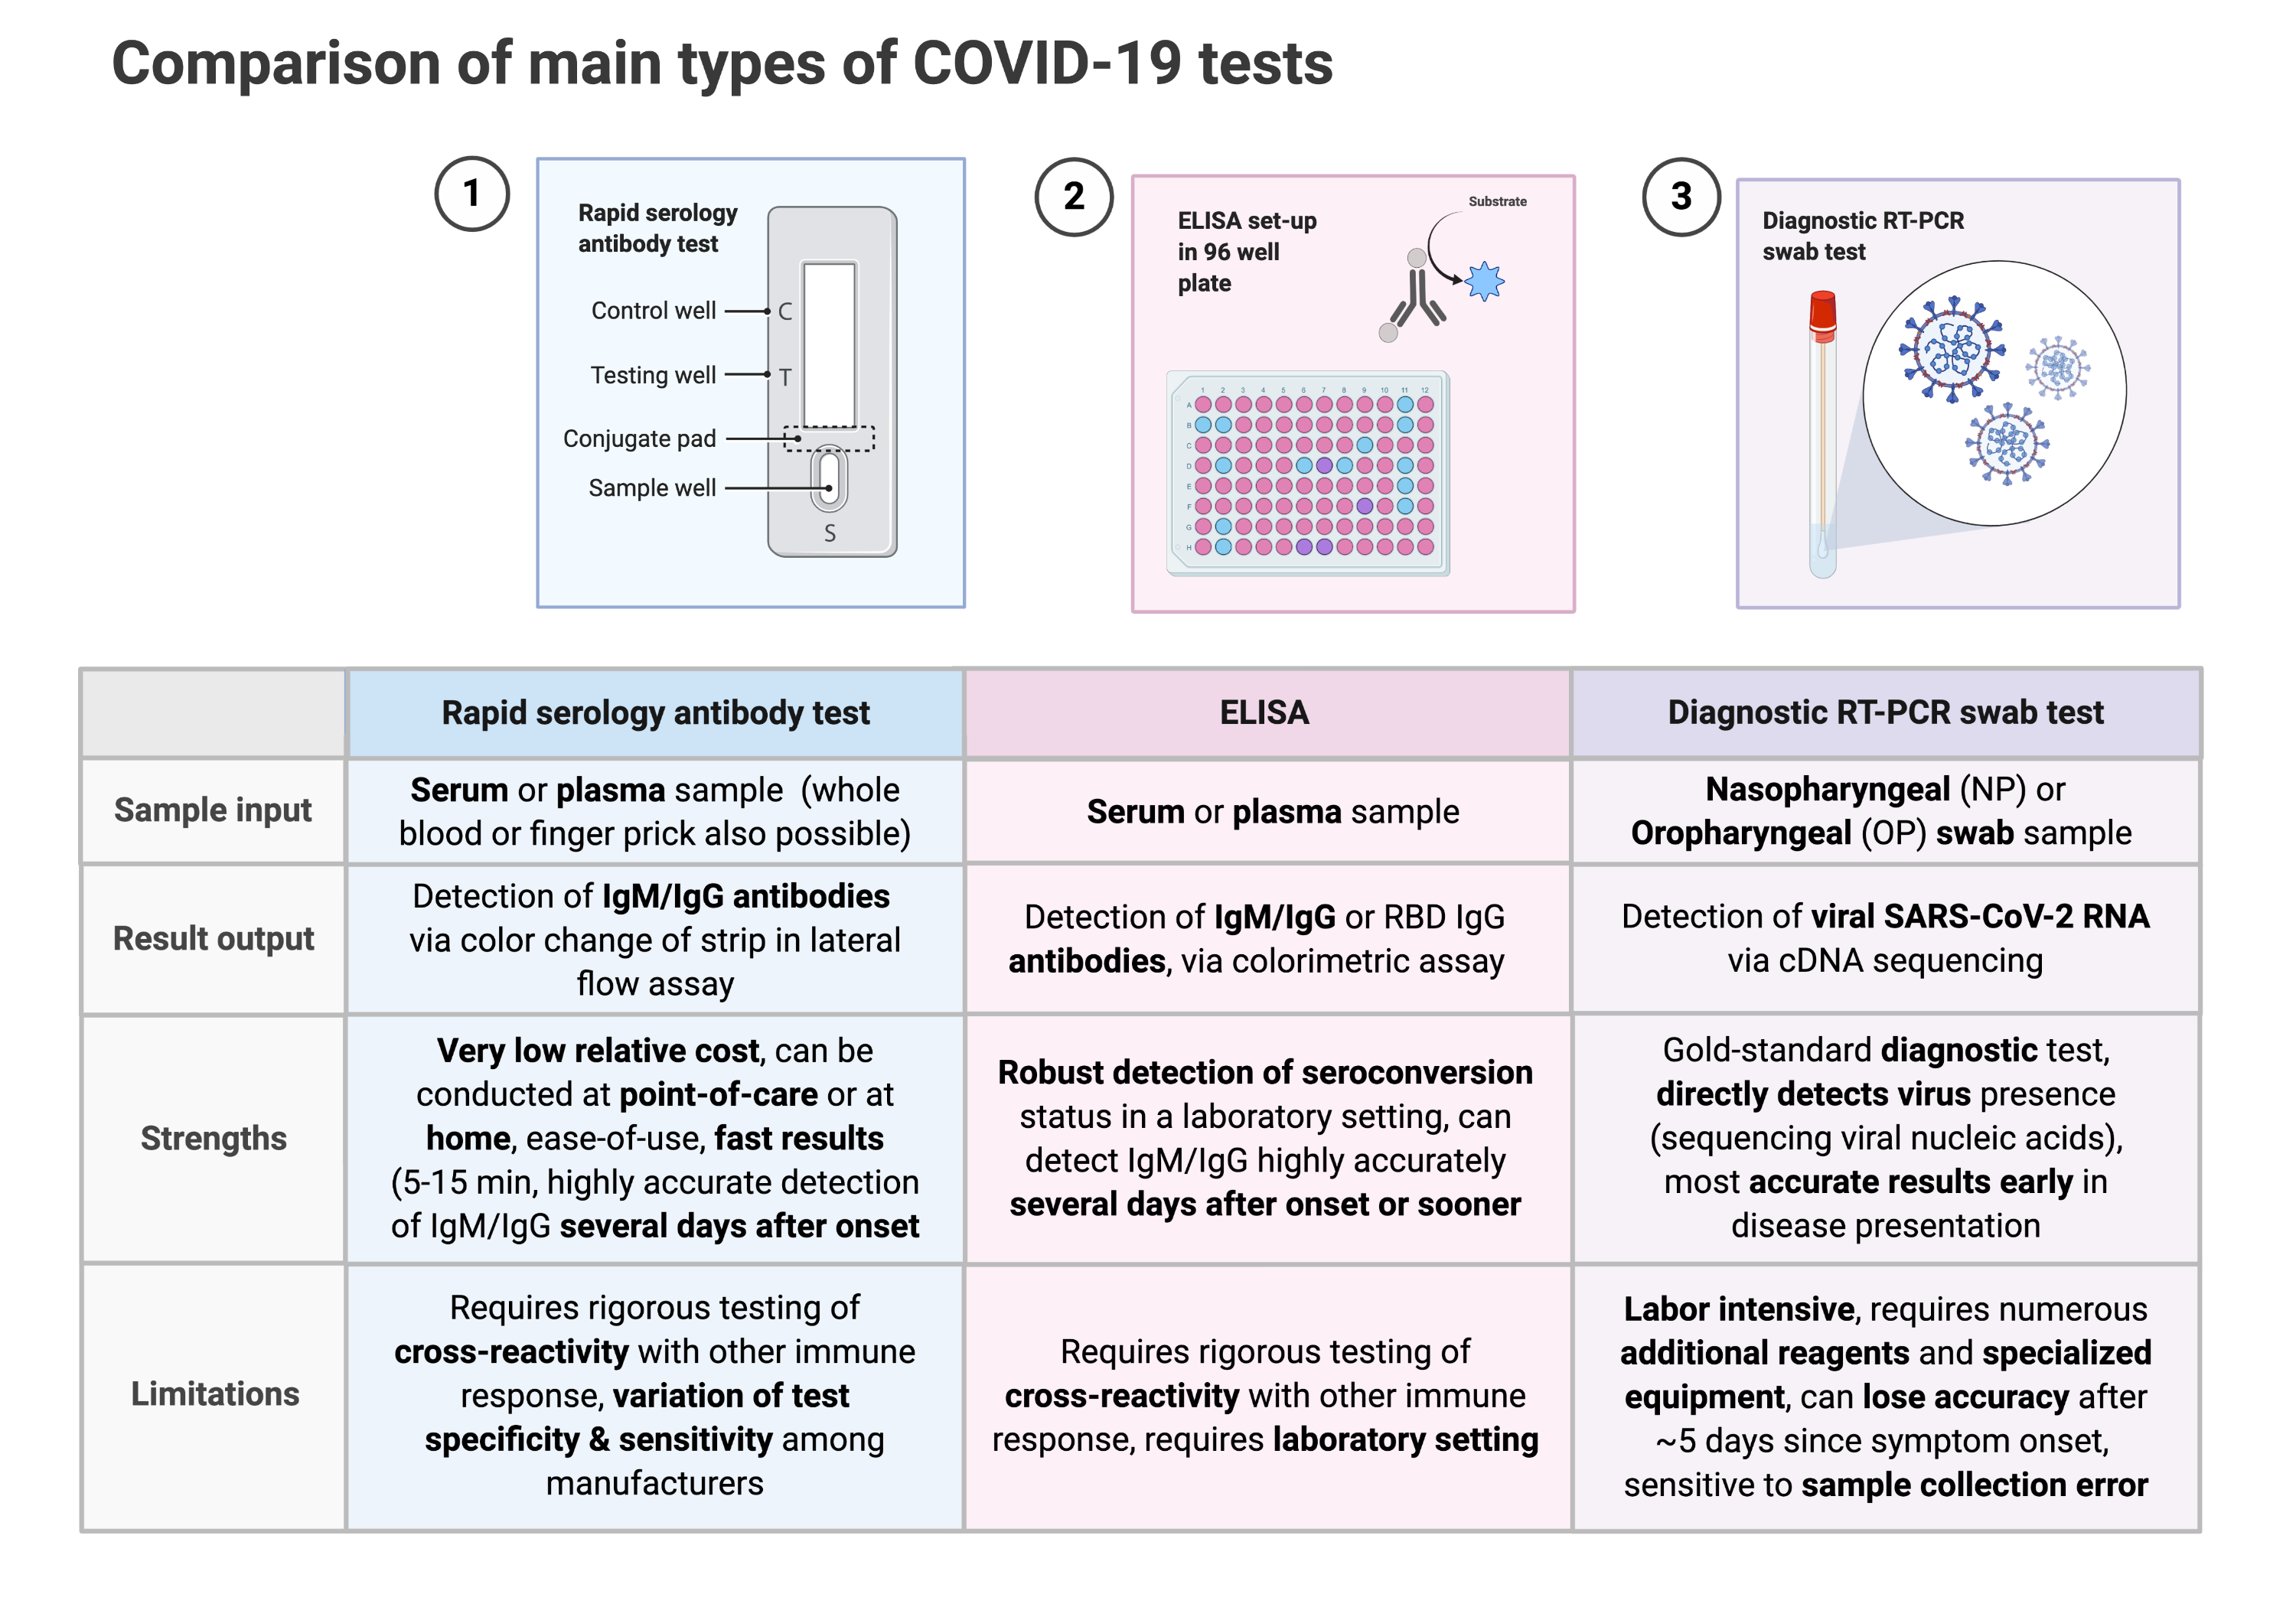 Comparison of main types of COVID-19 tests